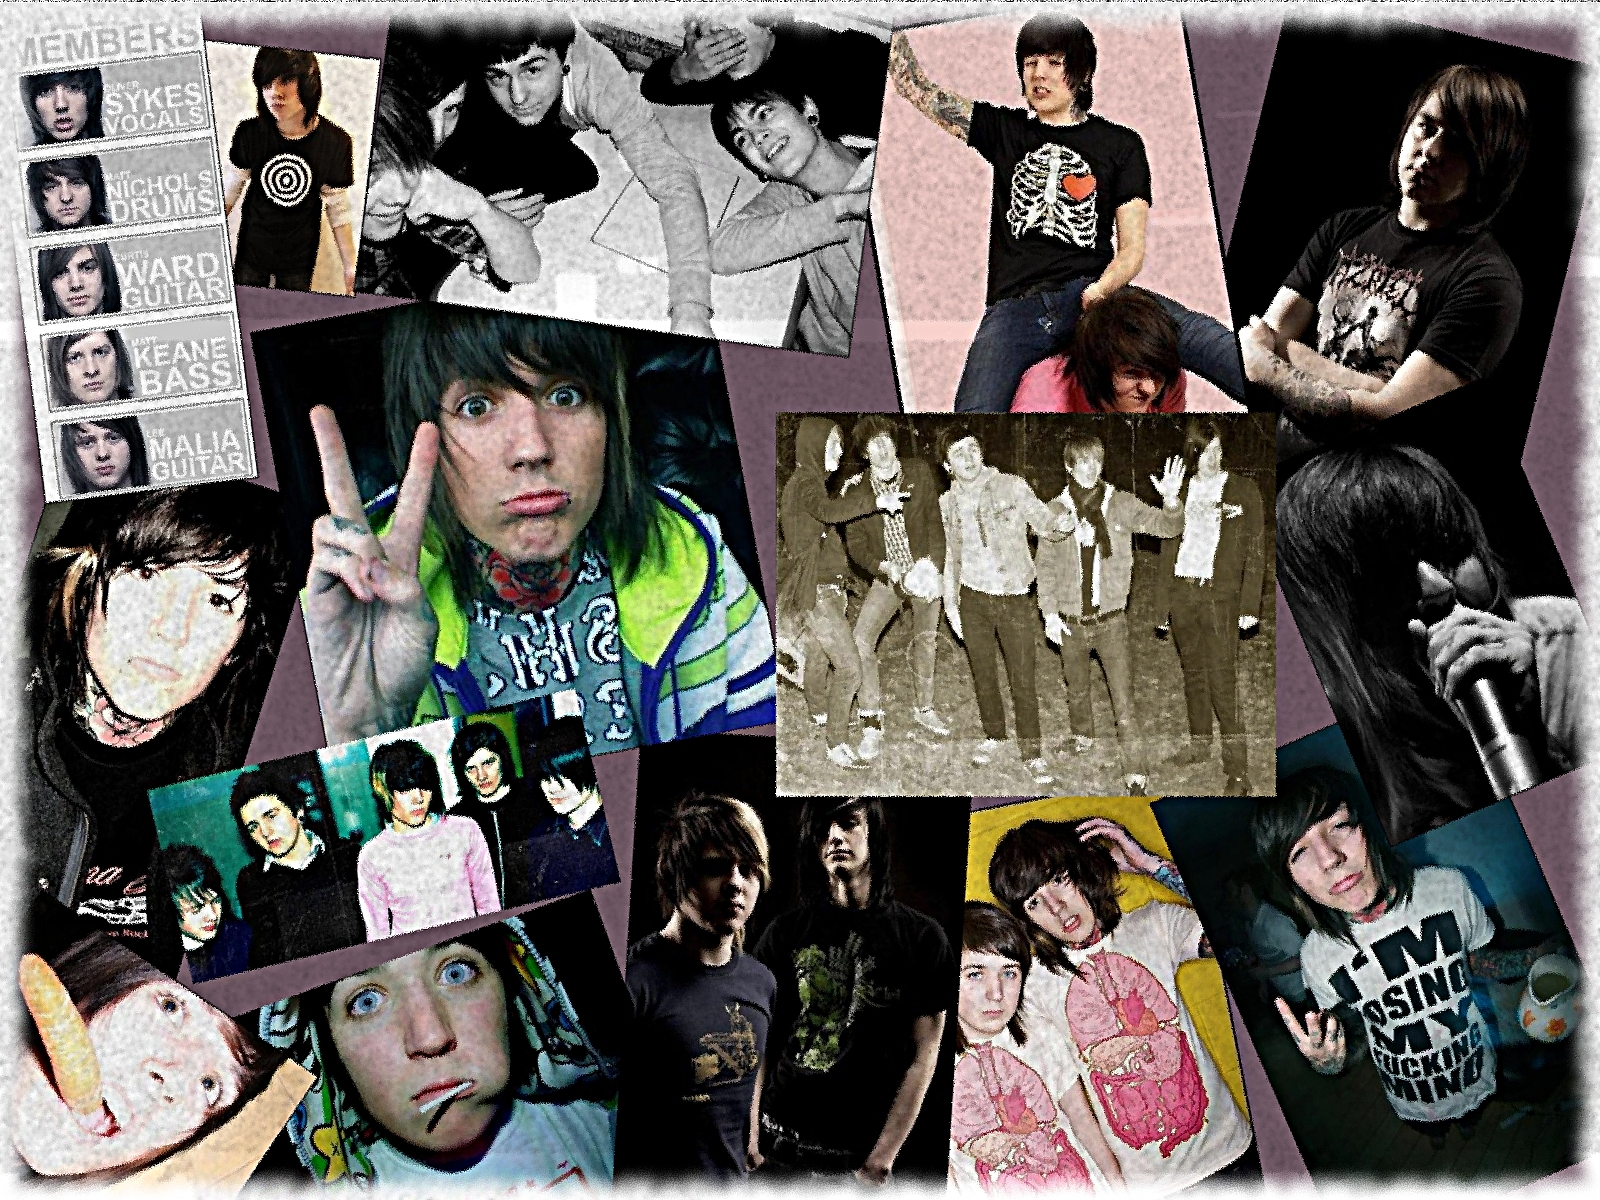 Free Download Bring Me The Horizon Wallpapers 1600x1200 For Your